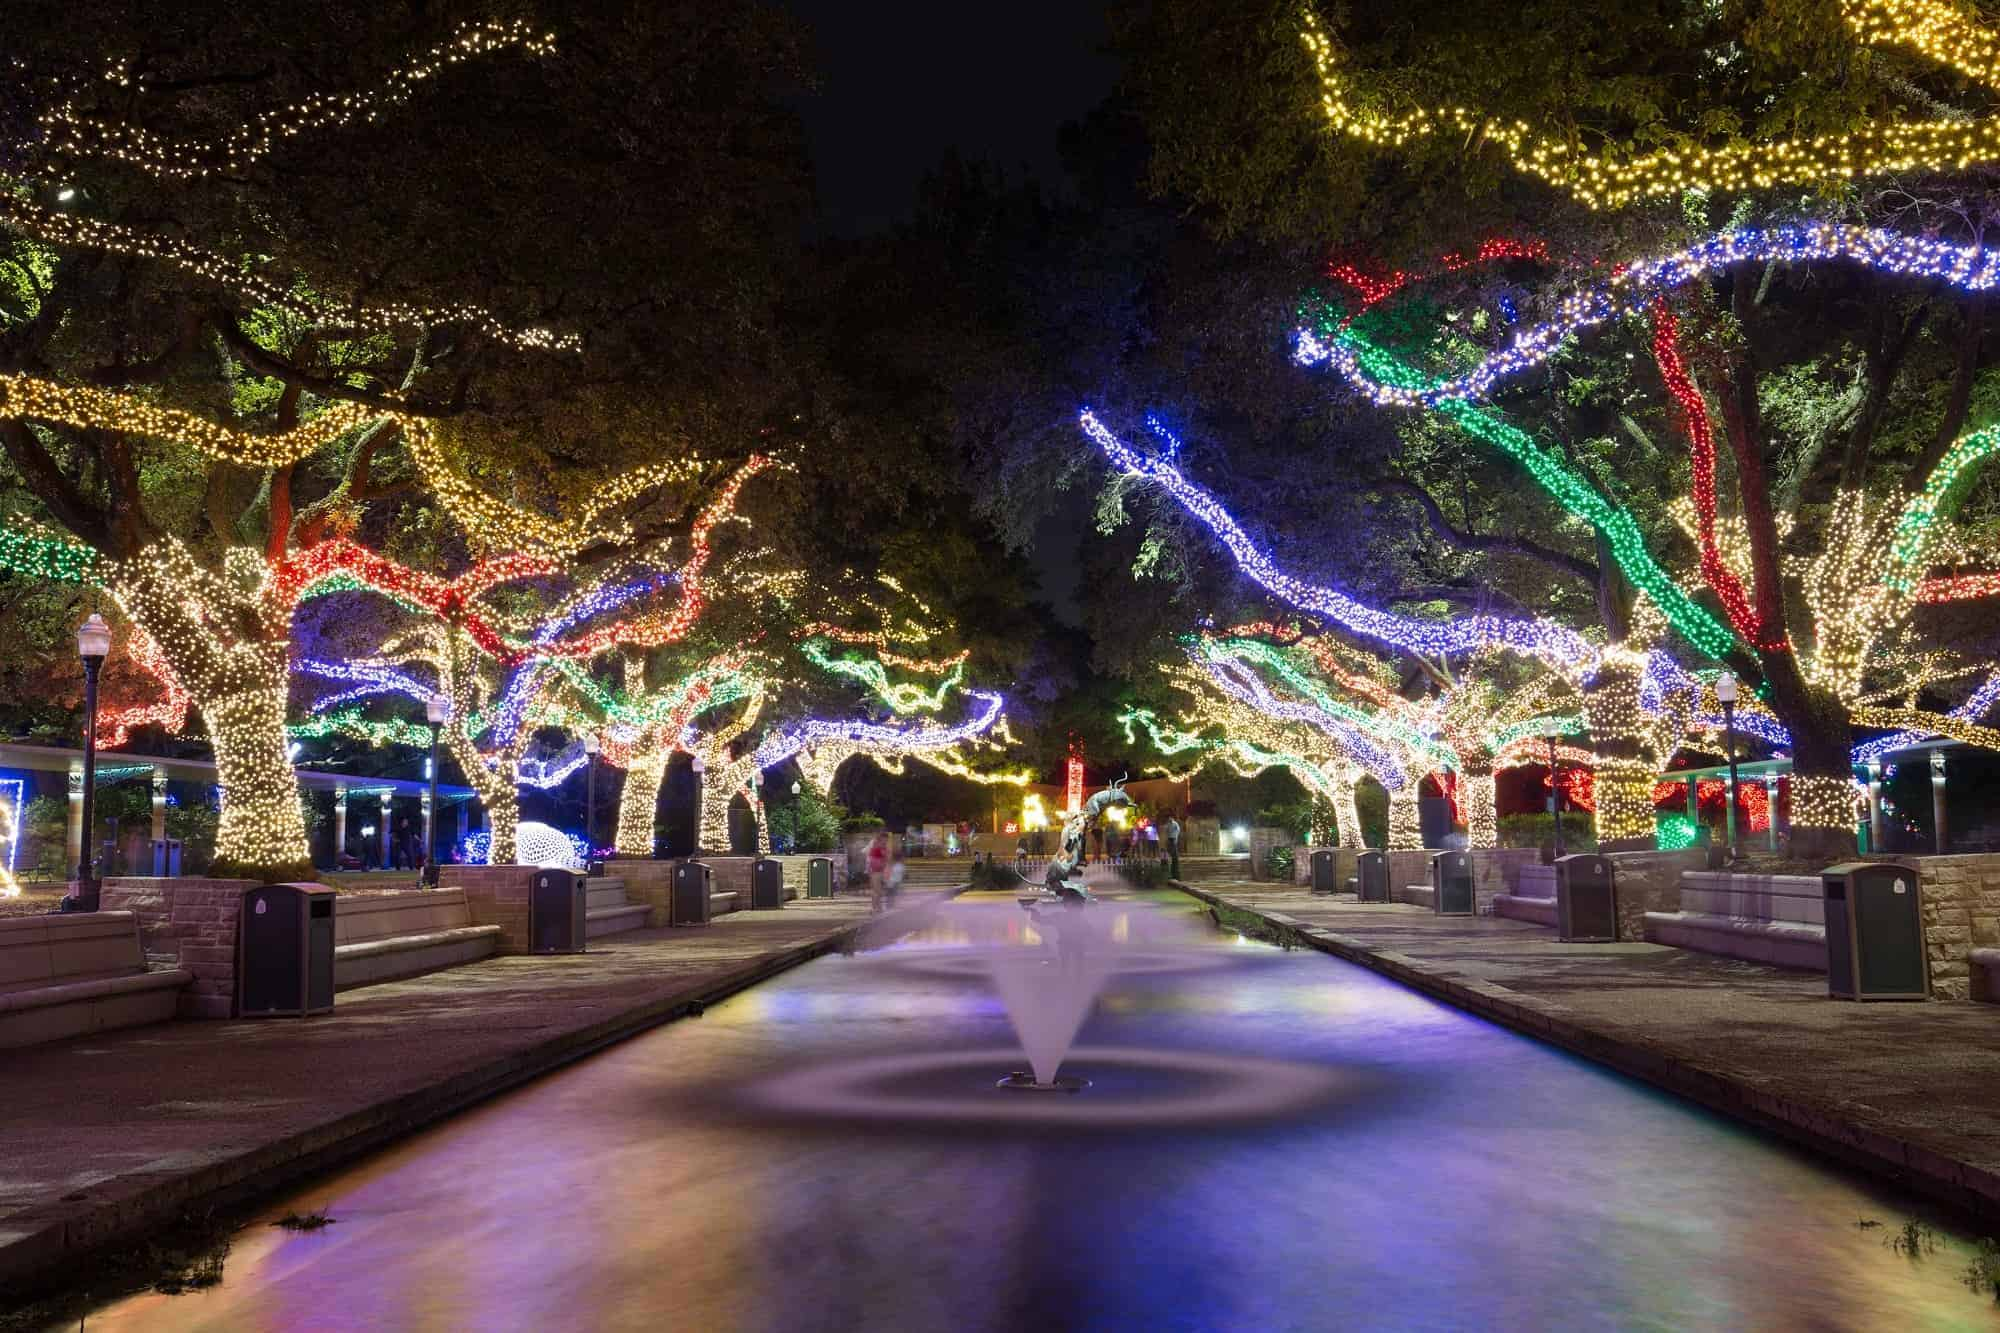 The Best Houston Christmas Events in 2020 for Families!